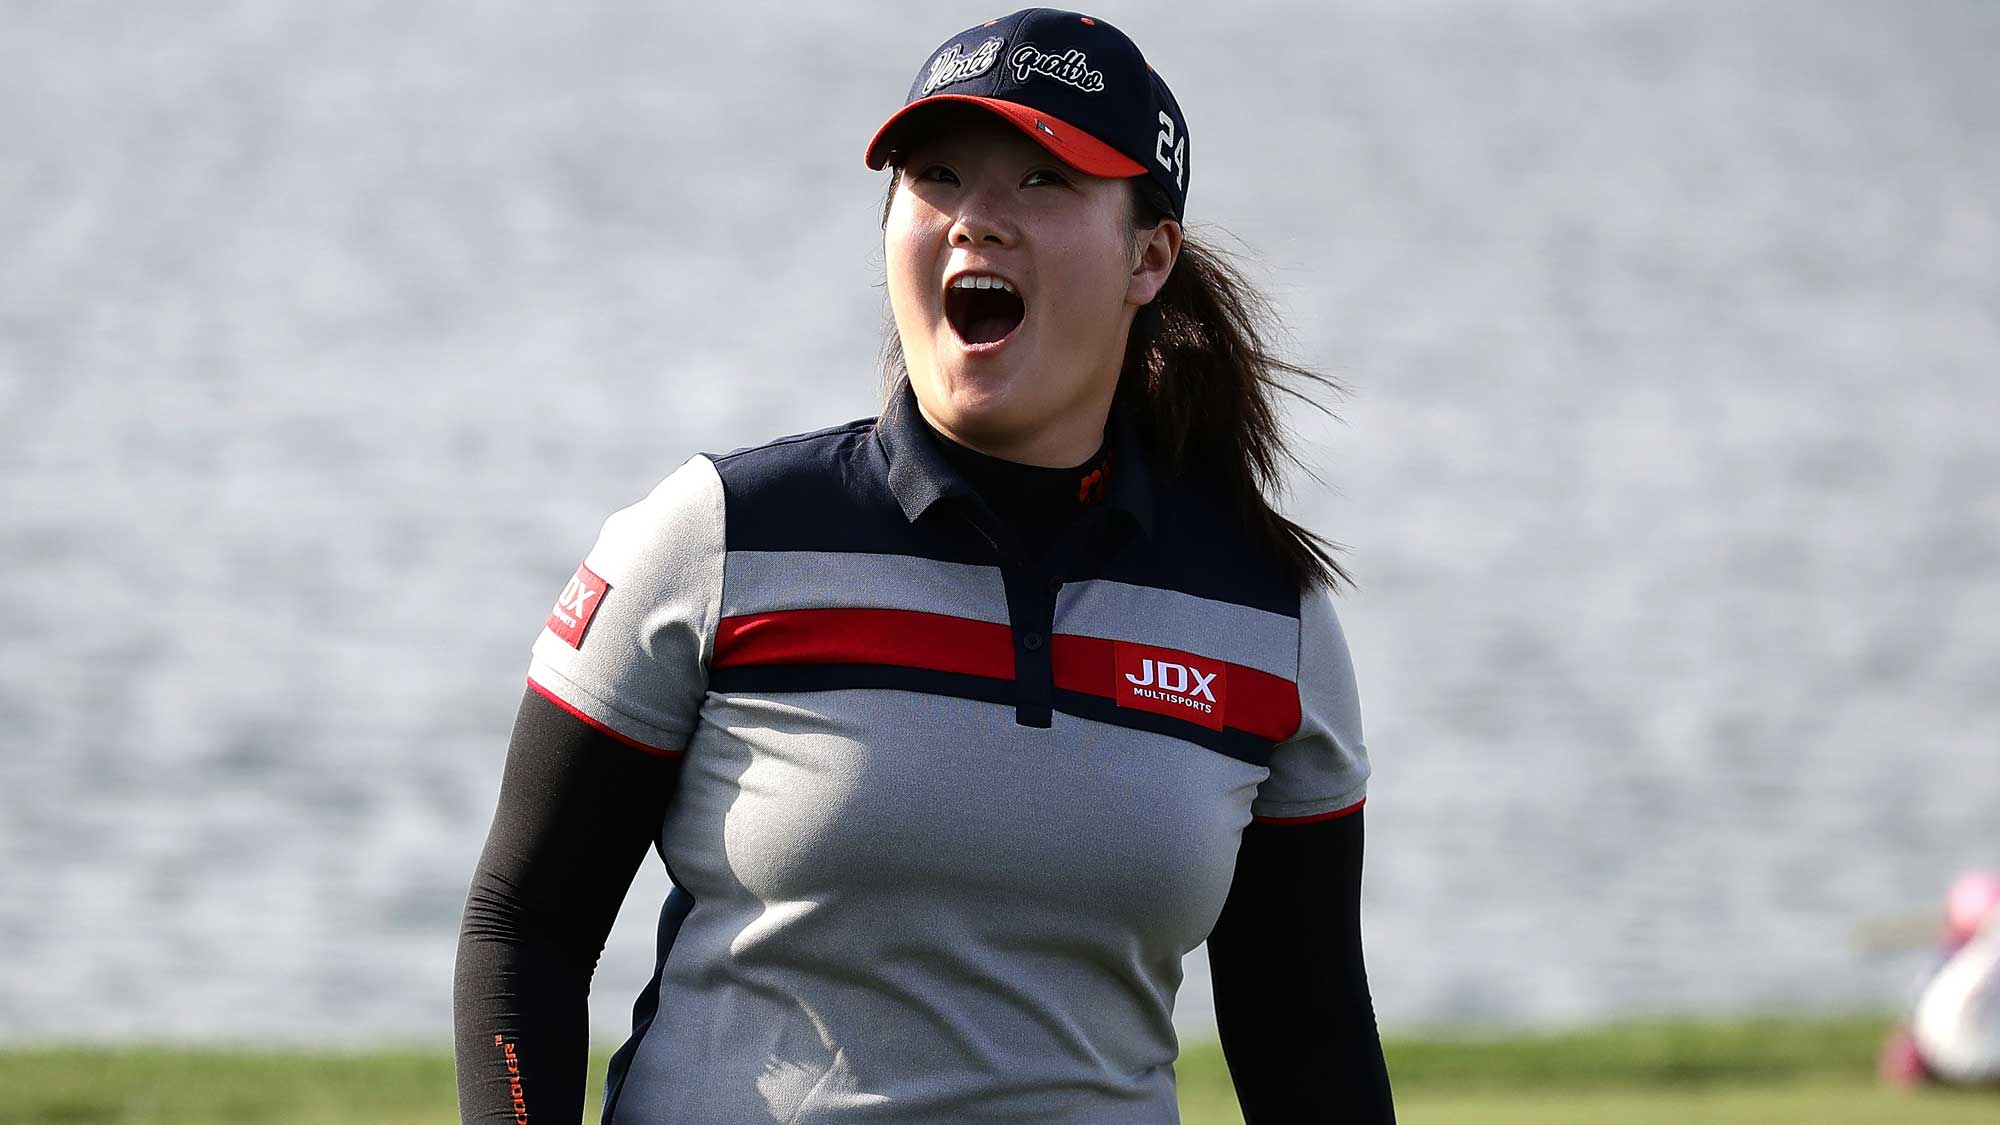 Angel Yin of United States reacts on the 18th green during the second round of the LPGA KEB Hana Bank Championship